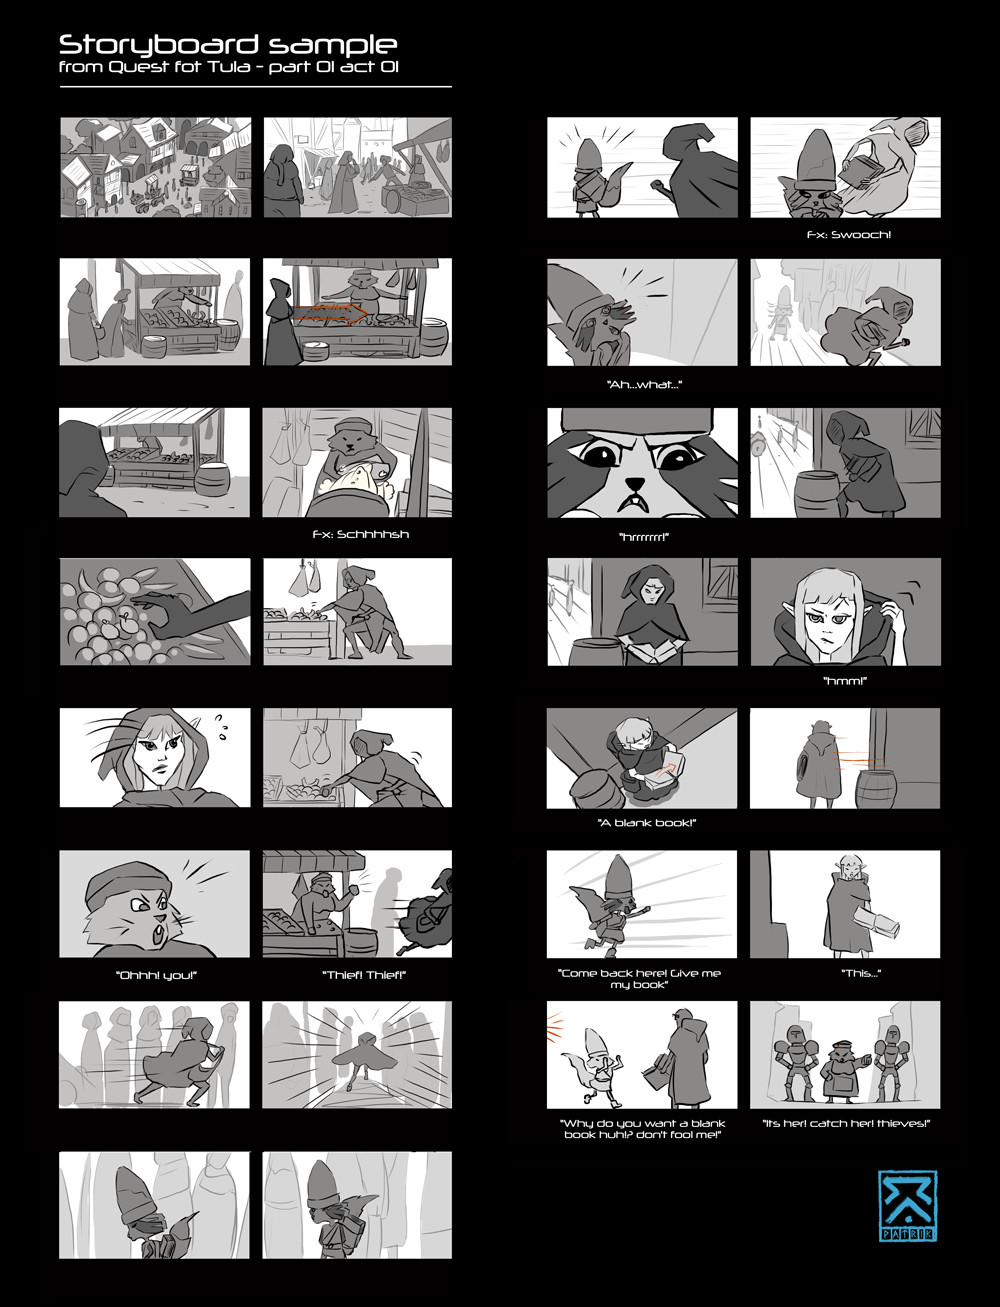 Storyboard sample from Quest for Tula